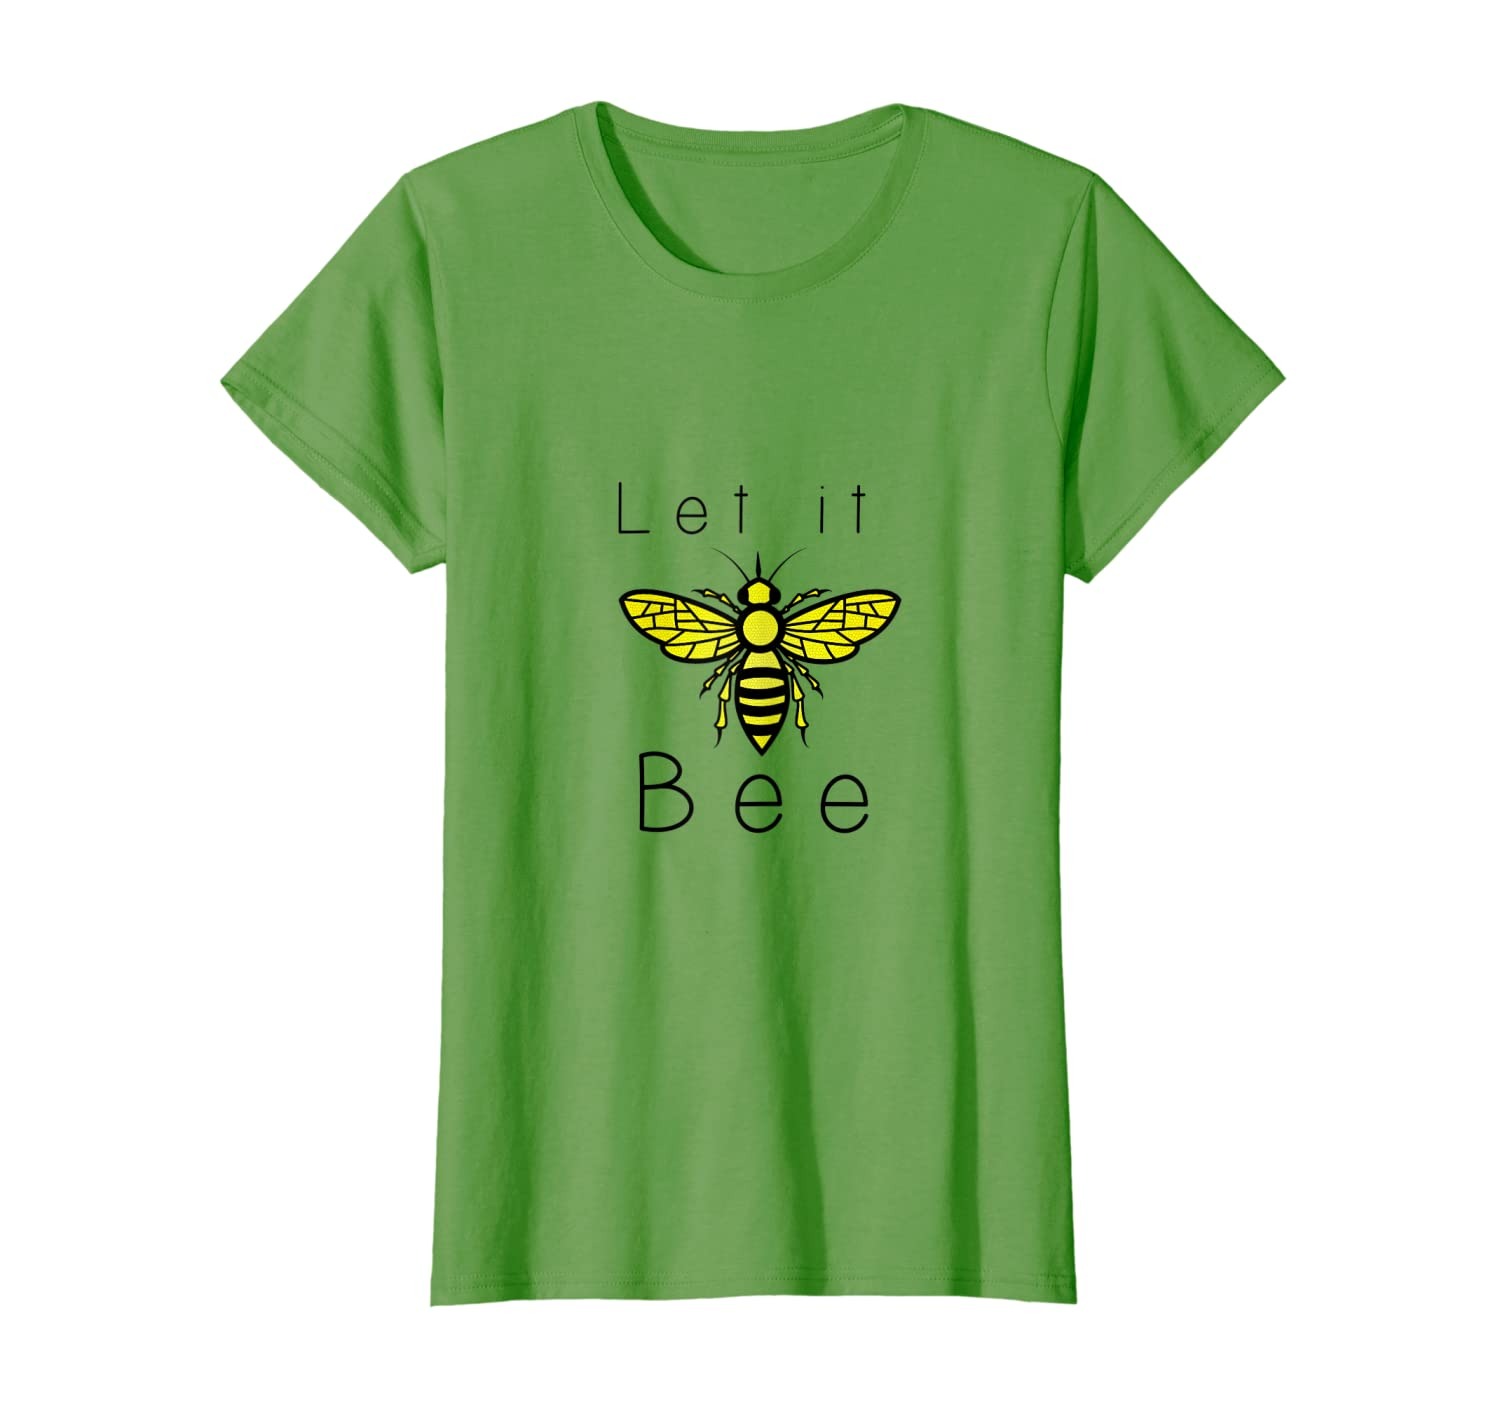 aba3a8a057fc9 Amazon.com: Womens Womens Let It Bee T Shirt: Clothing